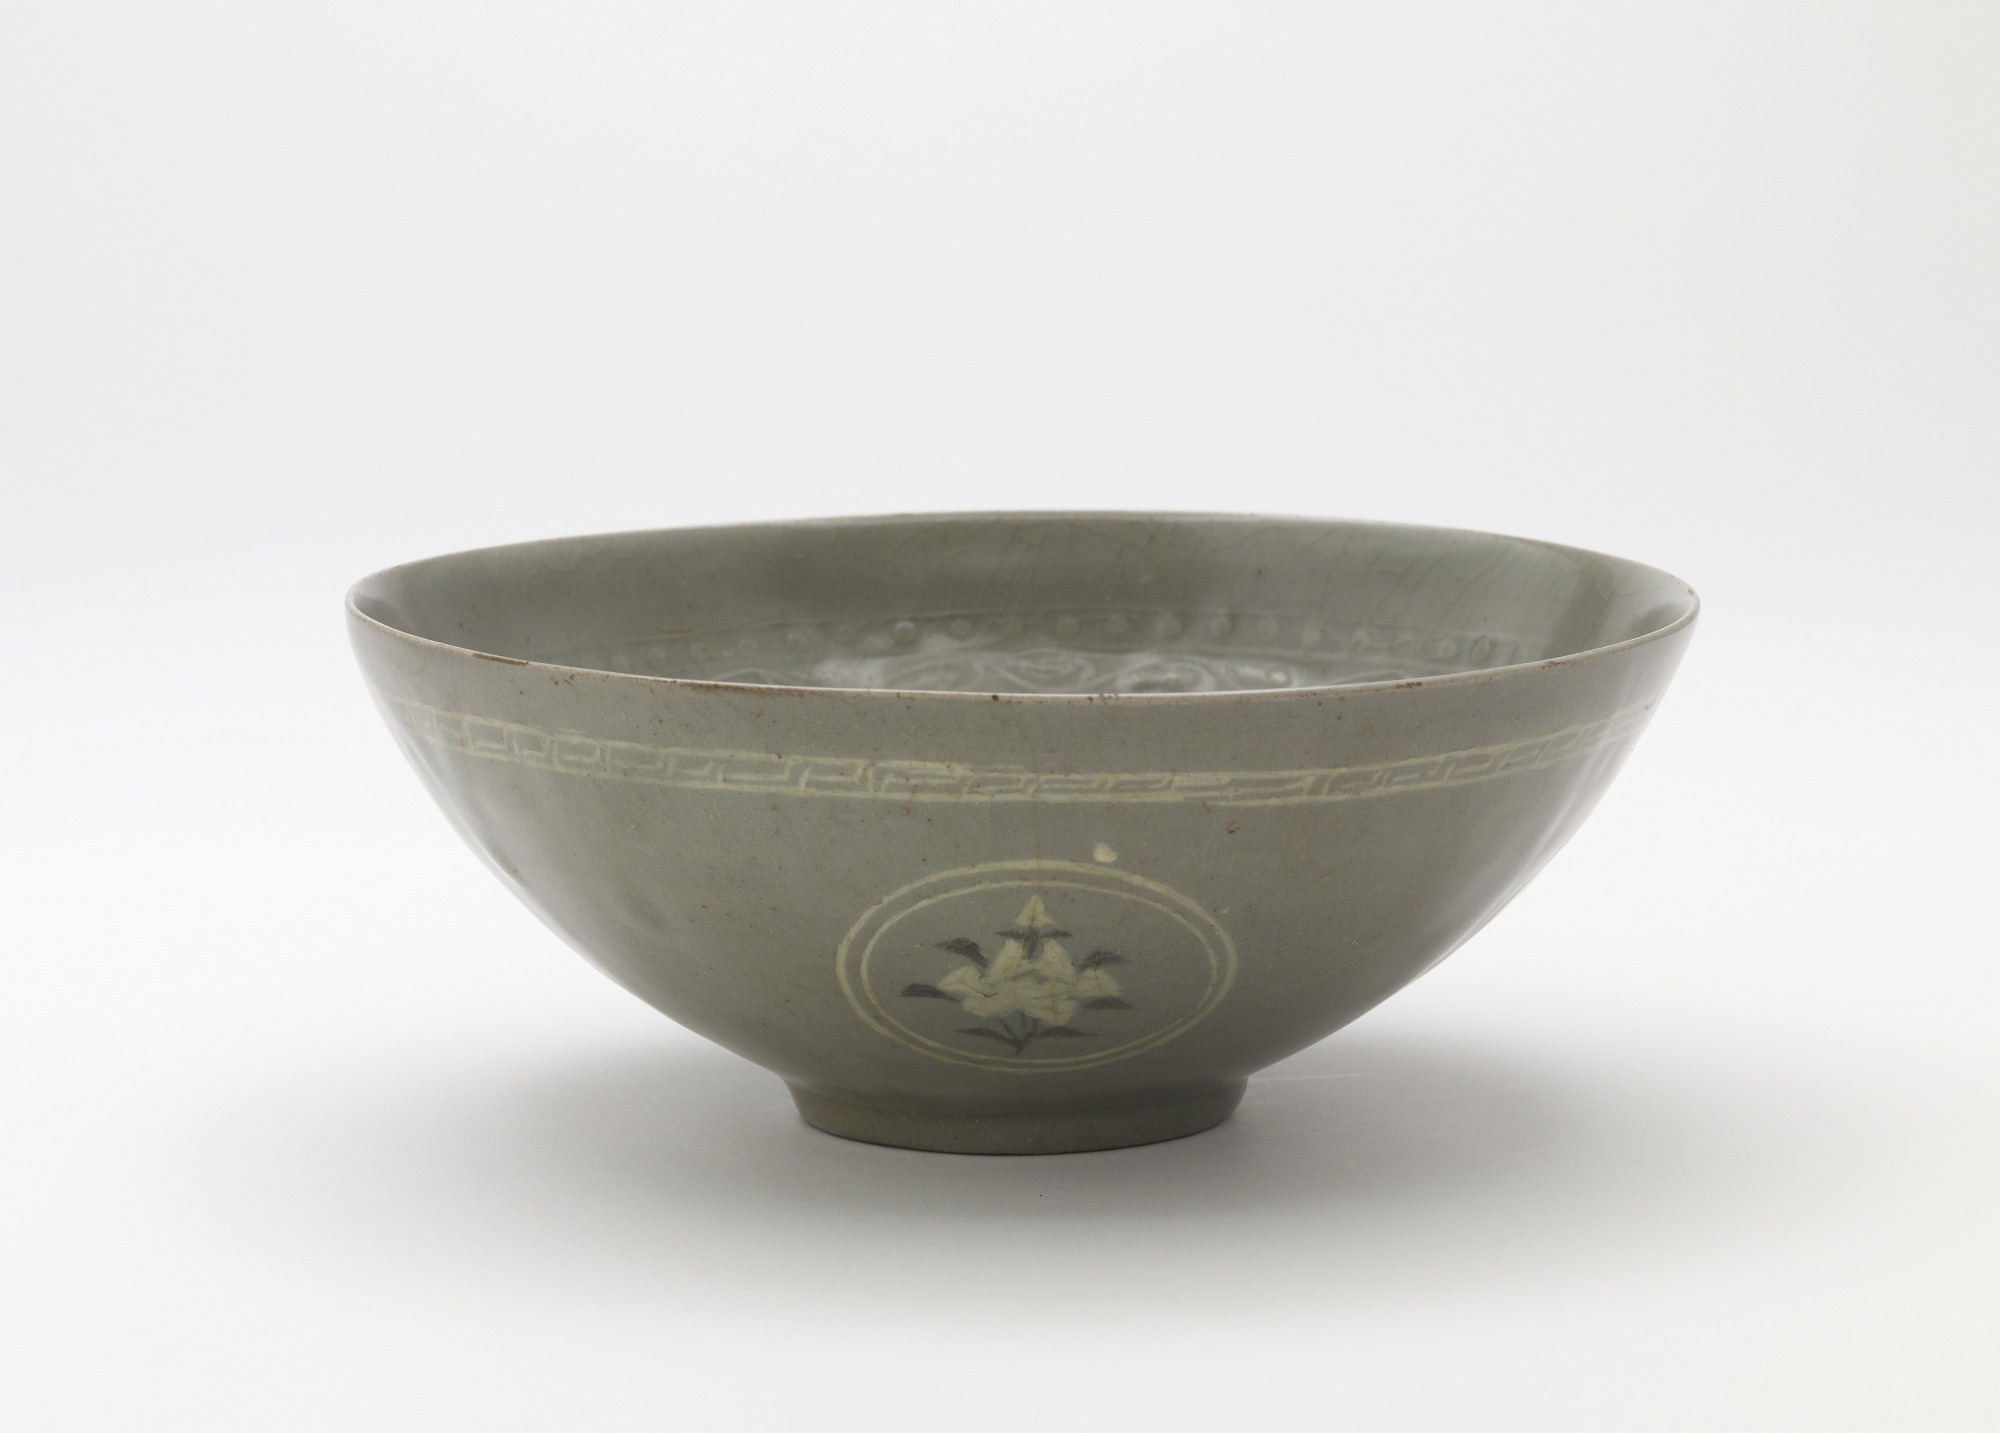 Bowl with molded and inlaid decoration, profile